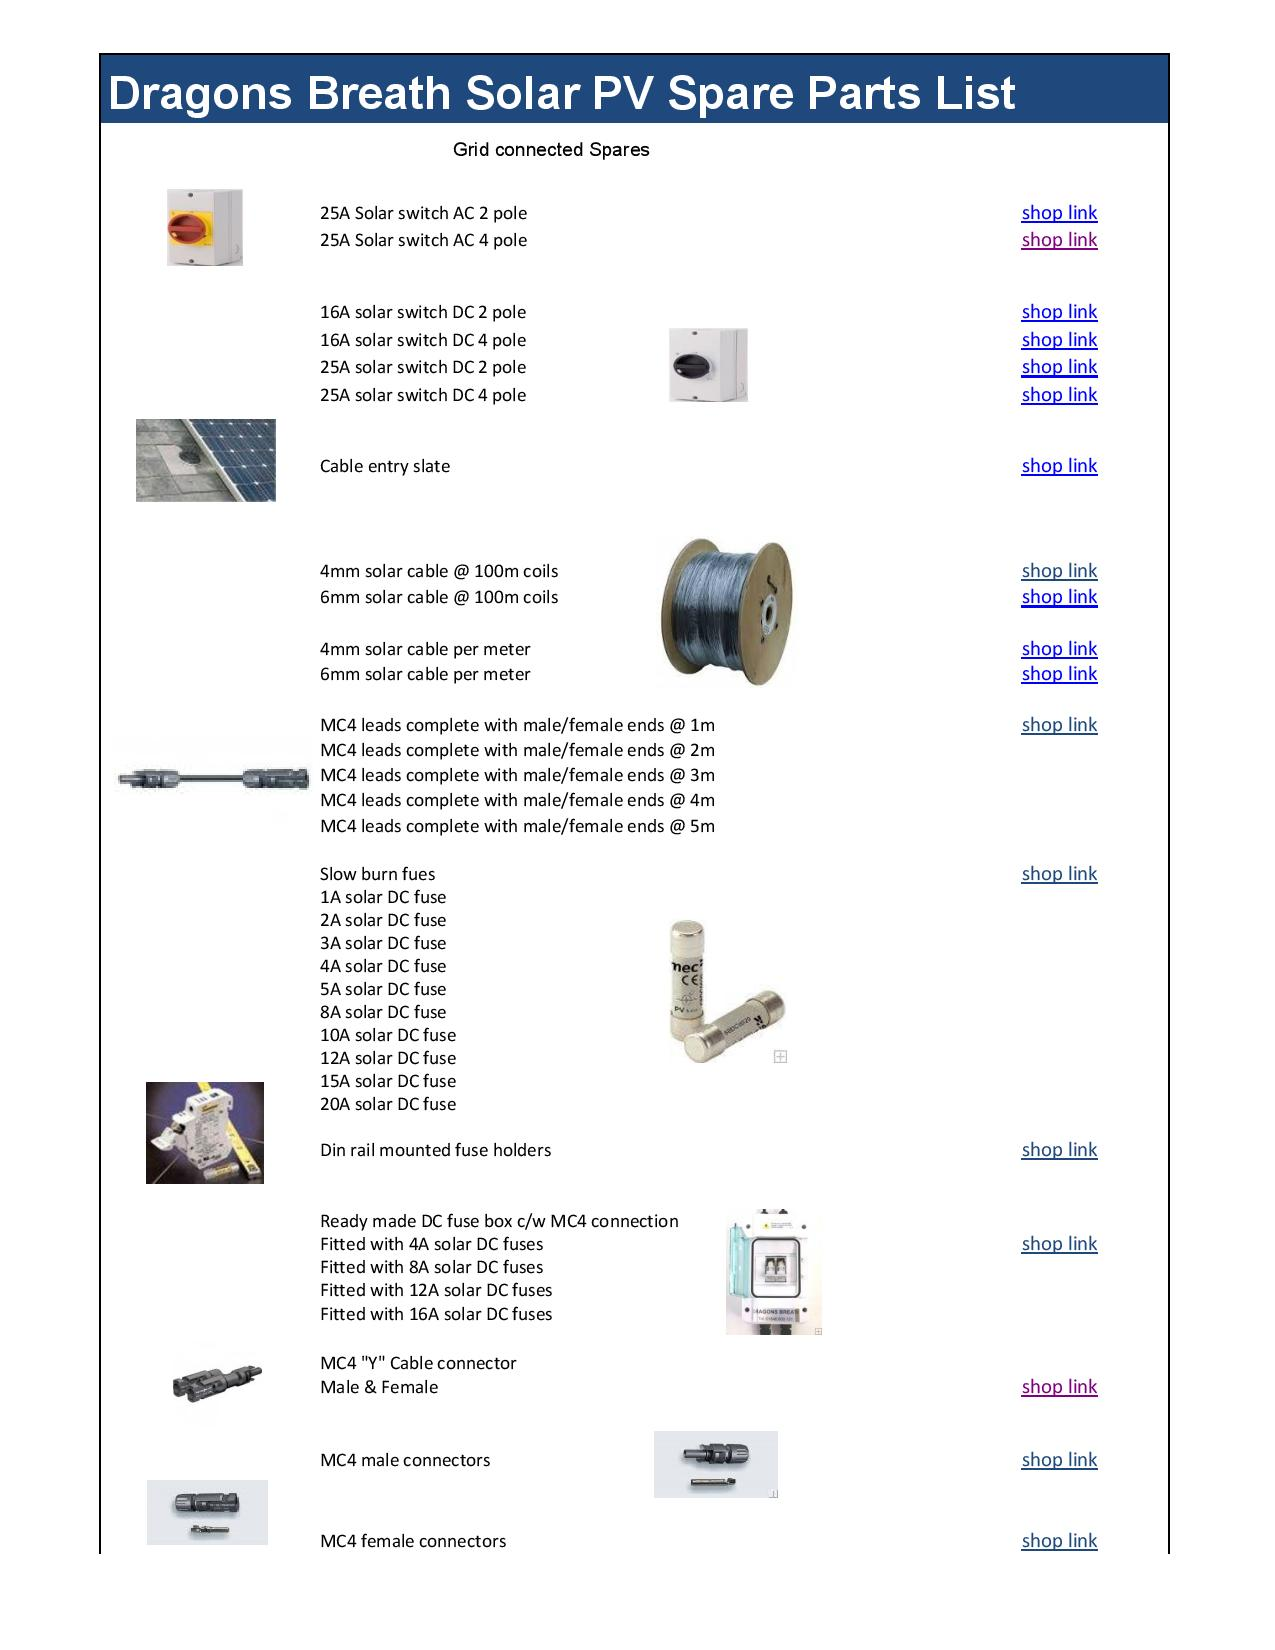 Grid solar components list of spare parts